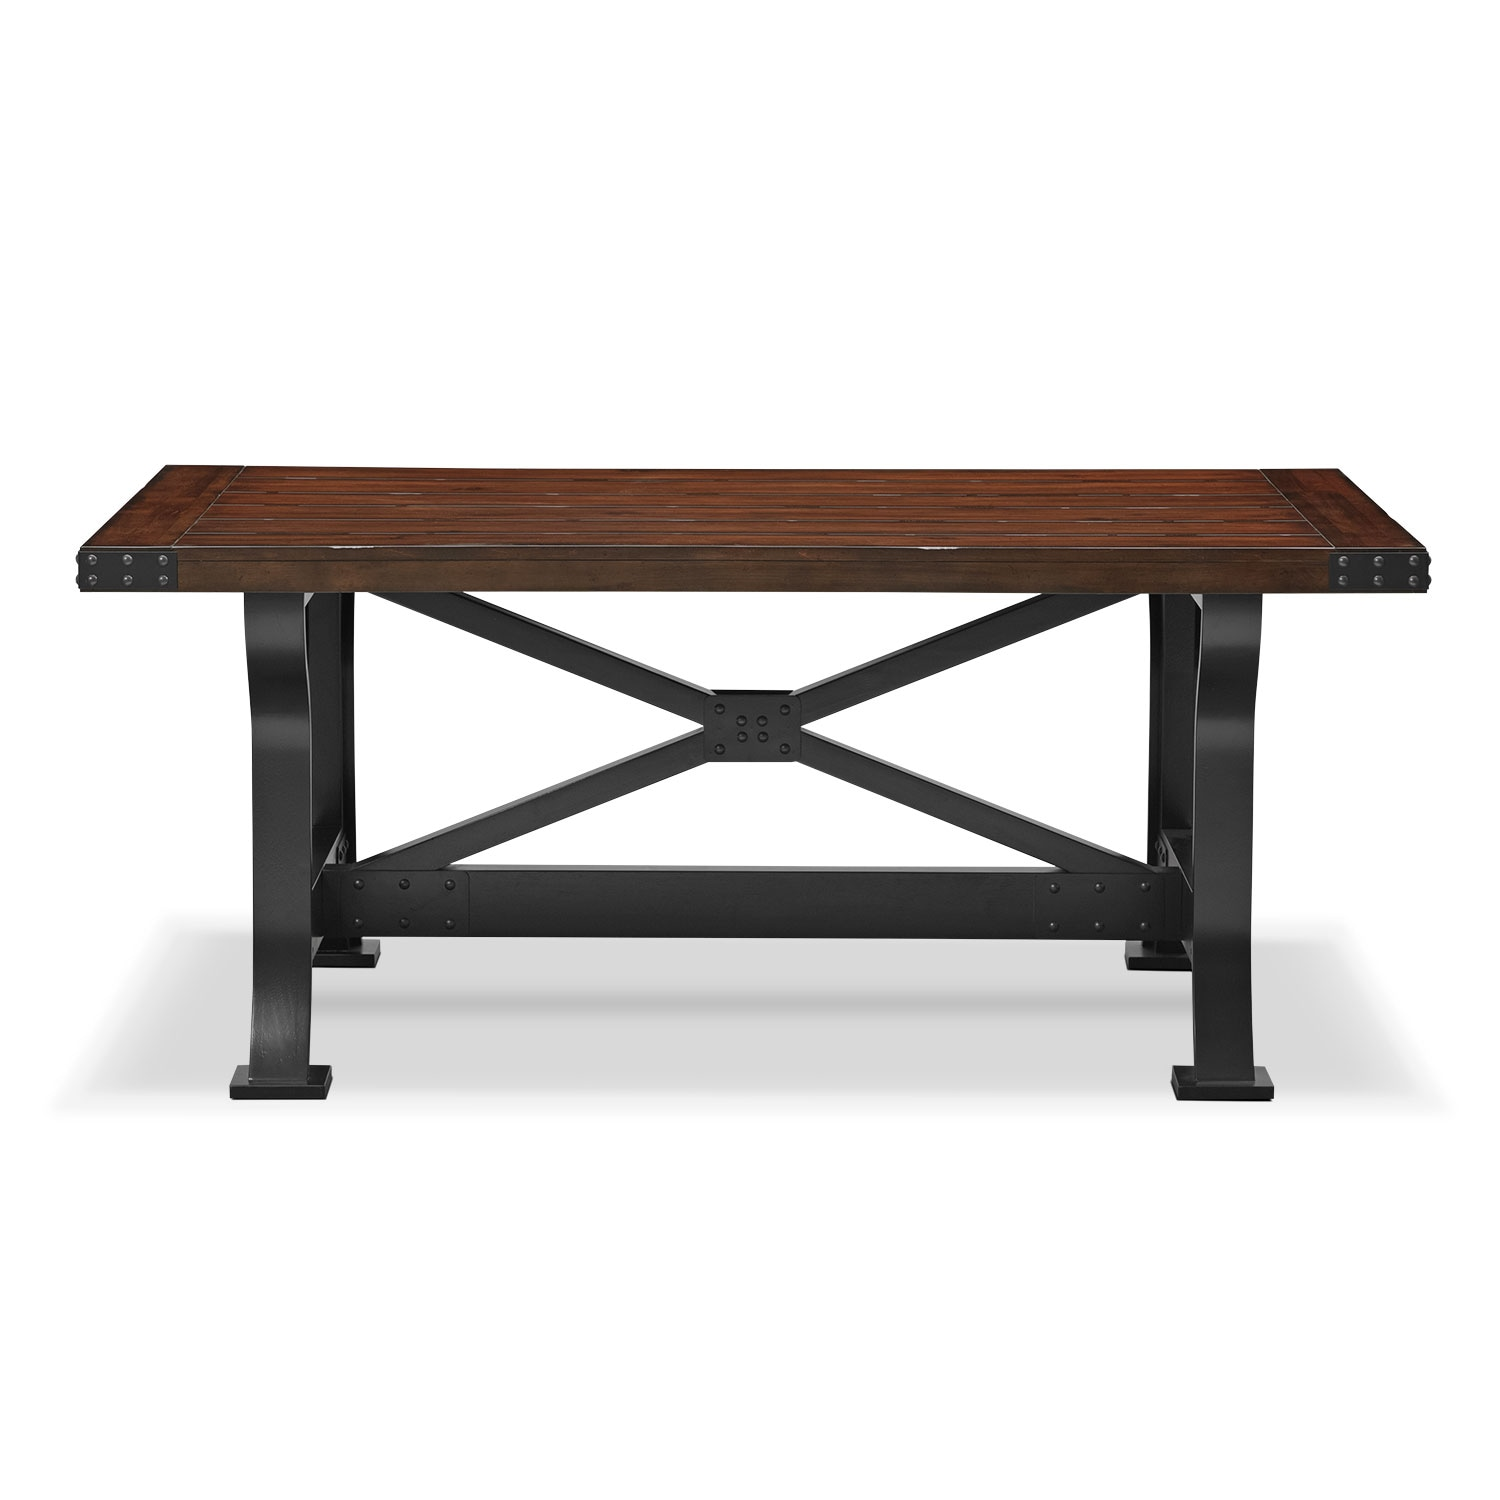 Average Height For Coffee Table Standard Coffee Table Height Coffee Table Height Coffee Table